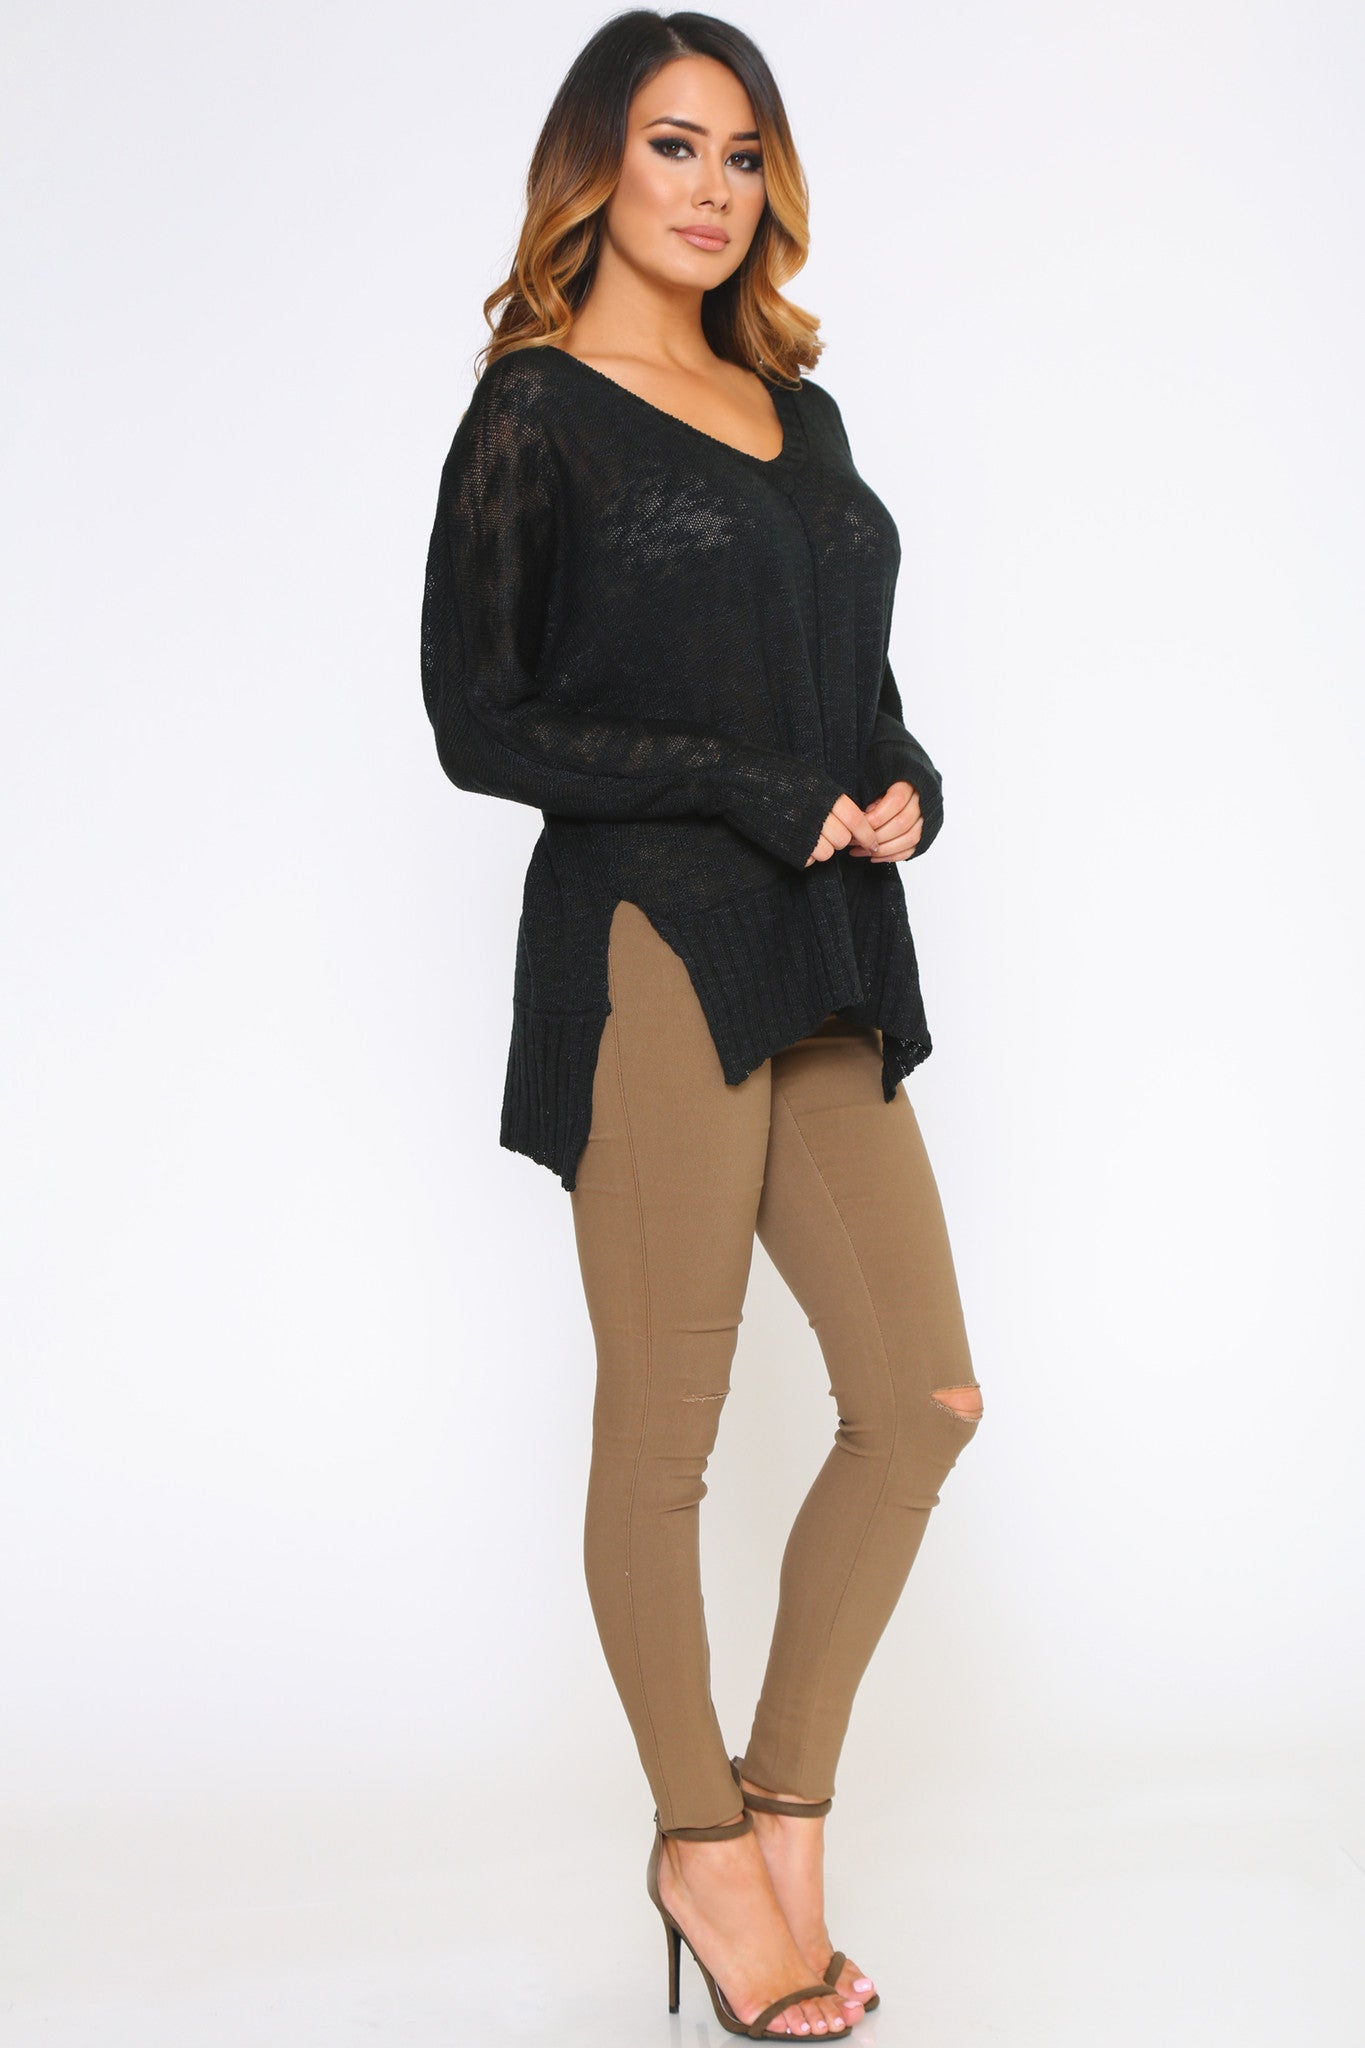 KARINA SWEATER - Glam Envy - 1